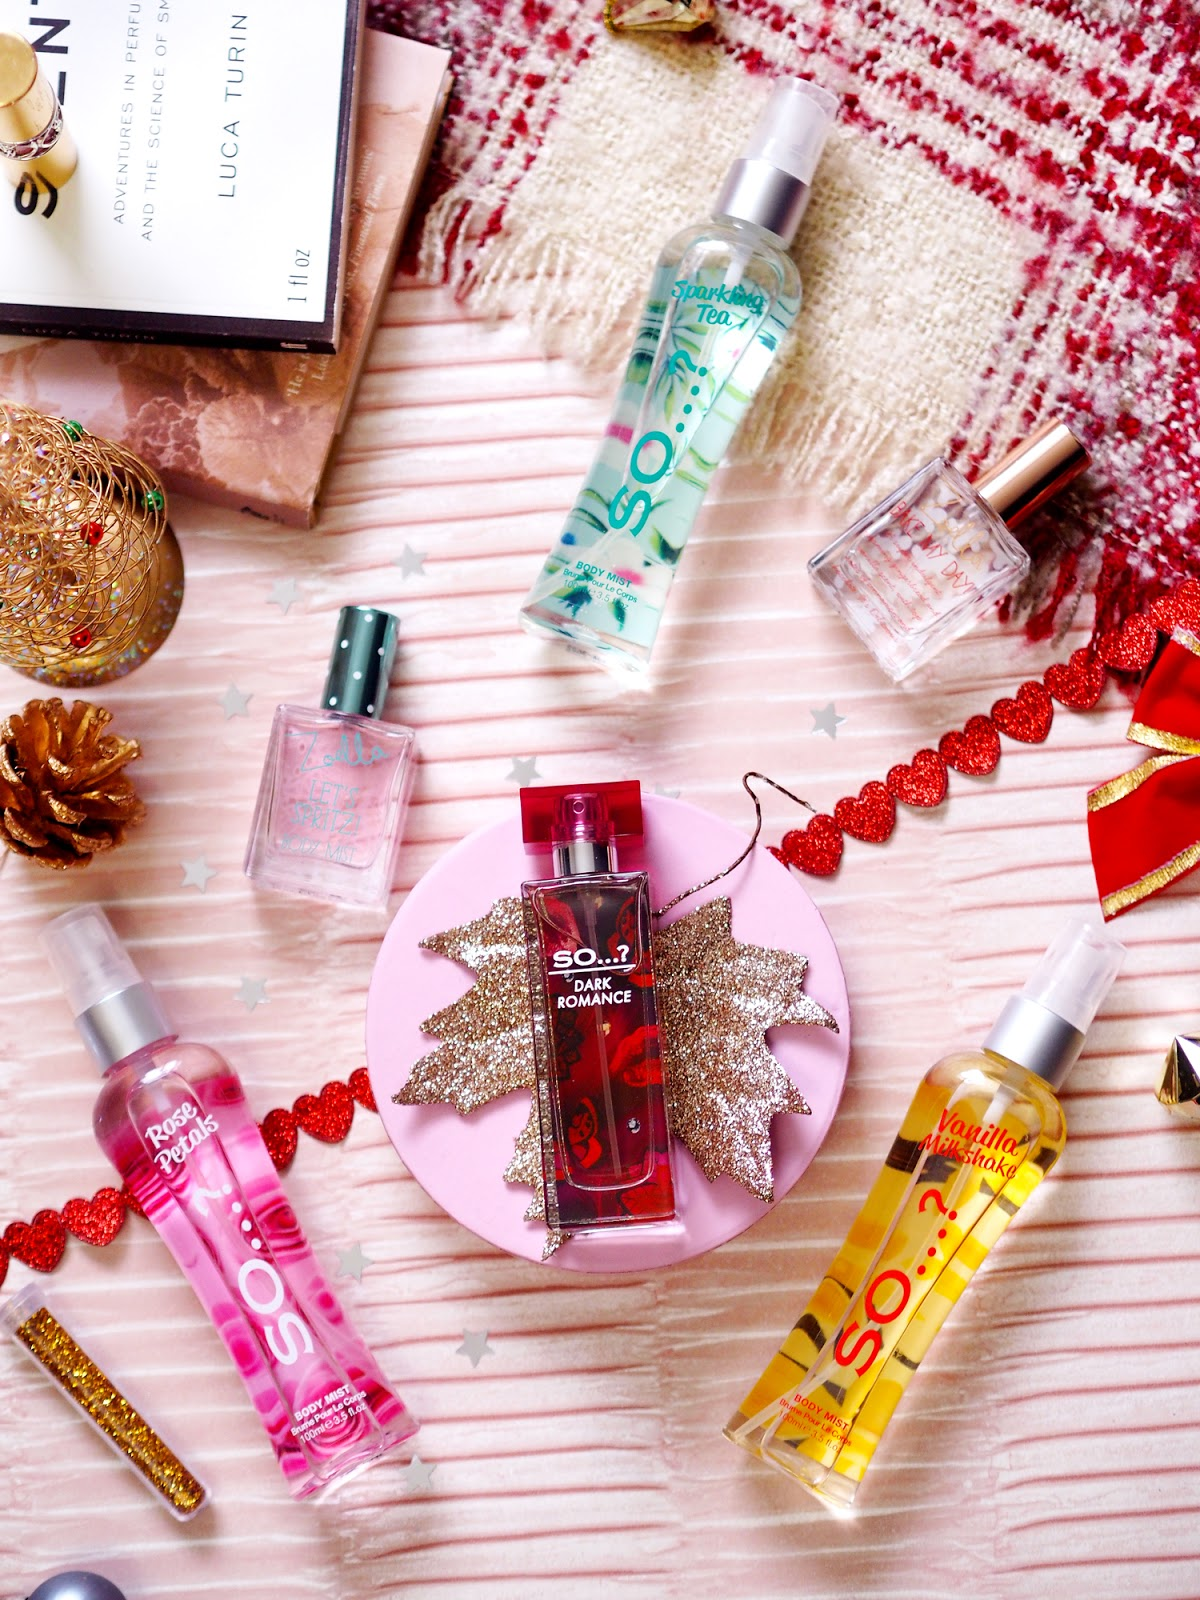 perfume gift guide stocking fillers so fragrance zoella beauty